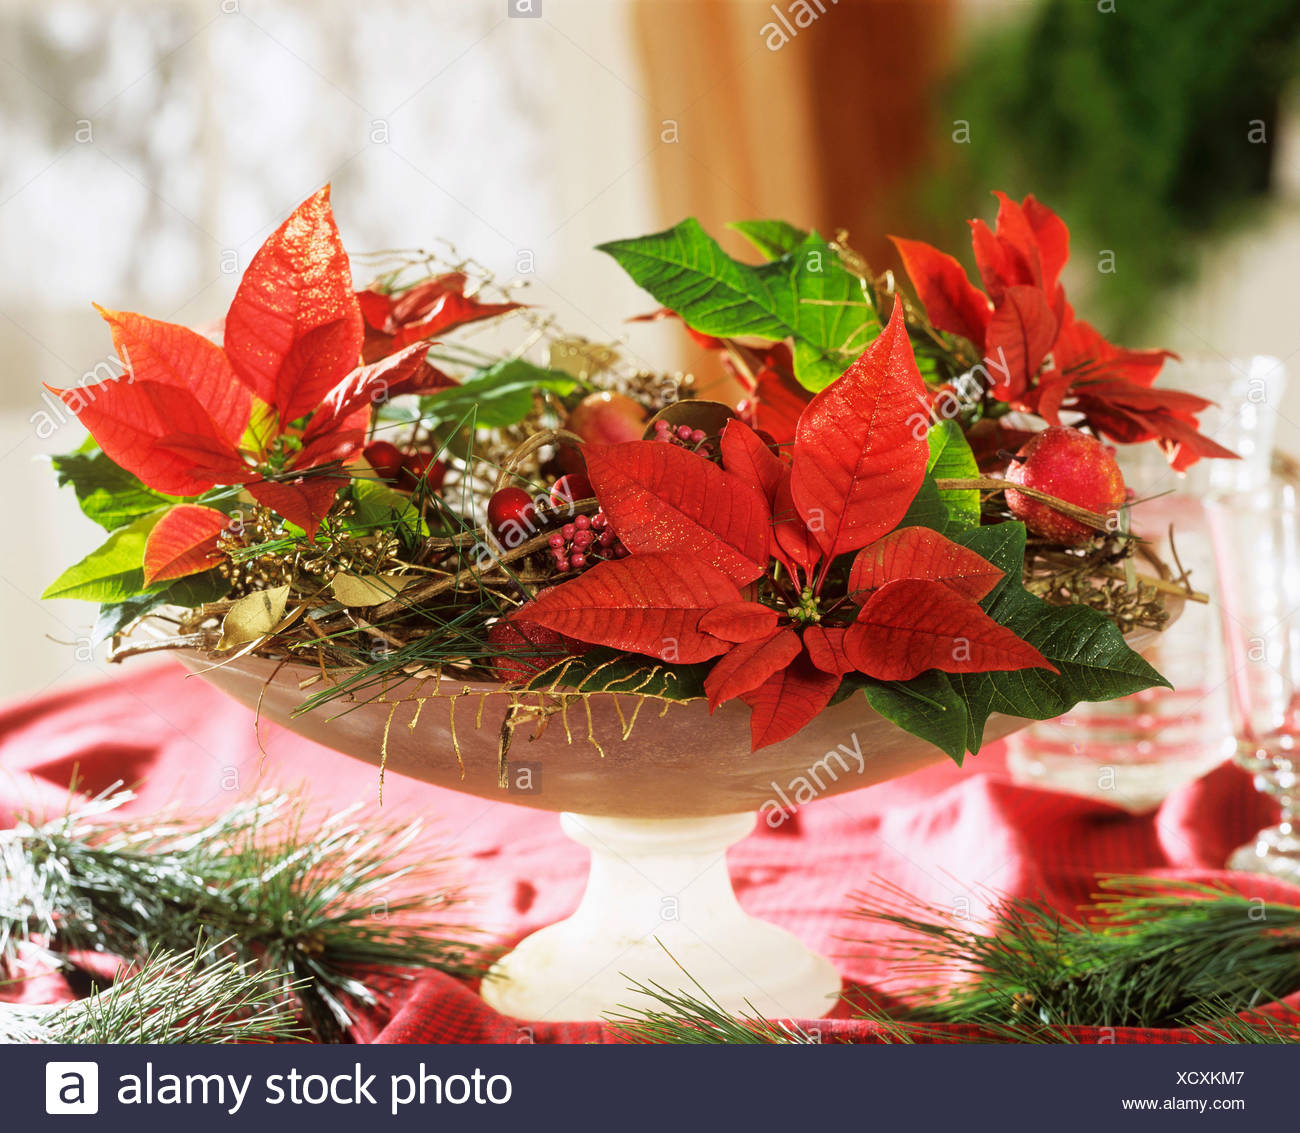 poinsettias in glass bowl with christmas decorations - Poinsettia Christmas Decorations